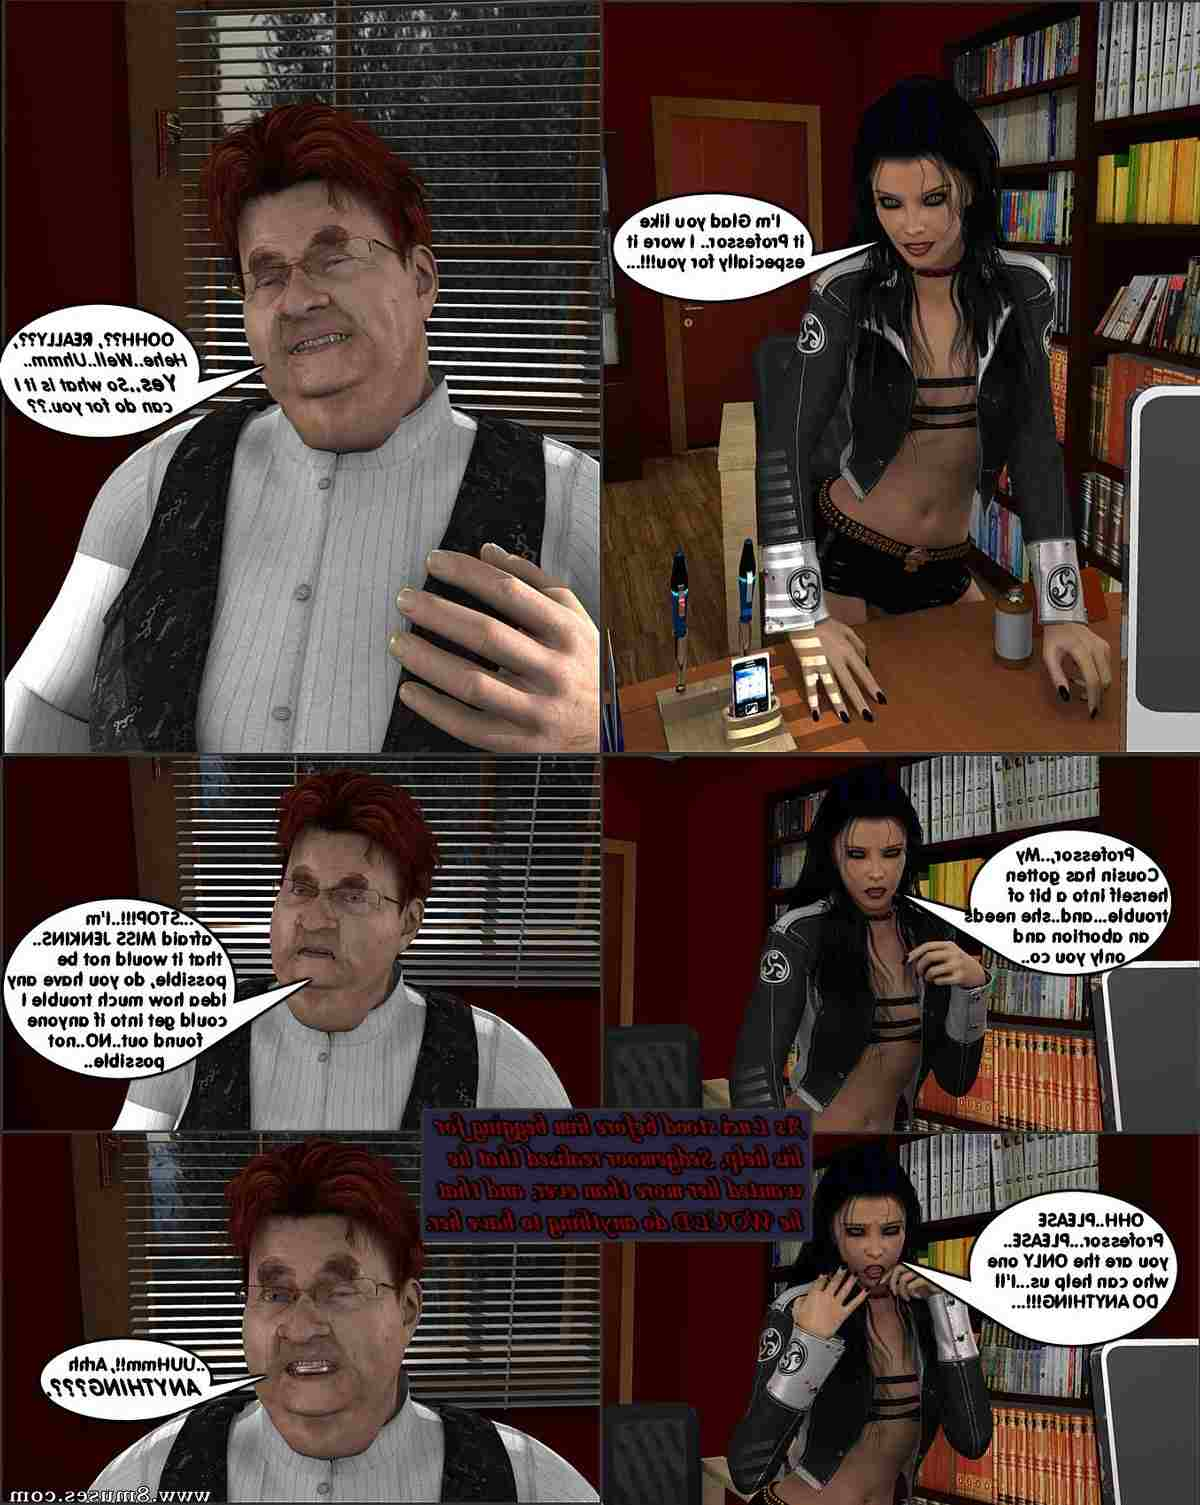 DarkSoul3D-Comics/Monstrous-Tales-Return-To-The-Boardwalk Monstrous_Tales_-_Return_To_The_Boardwalk__8muses_-_Sex_and_Porn_Comics_41.jpg